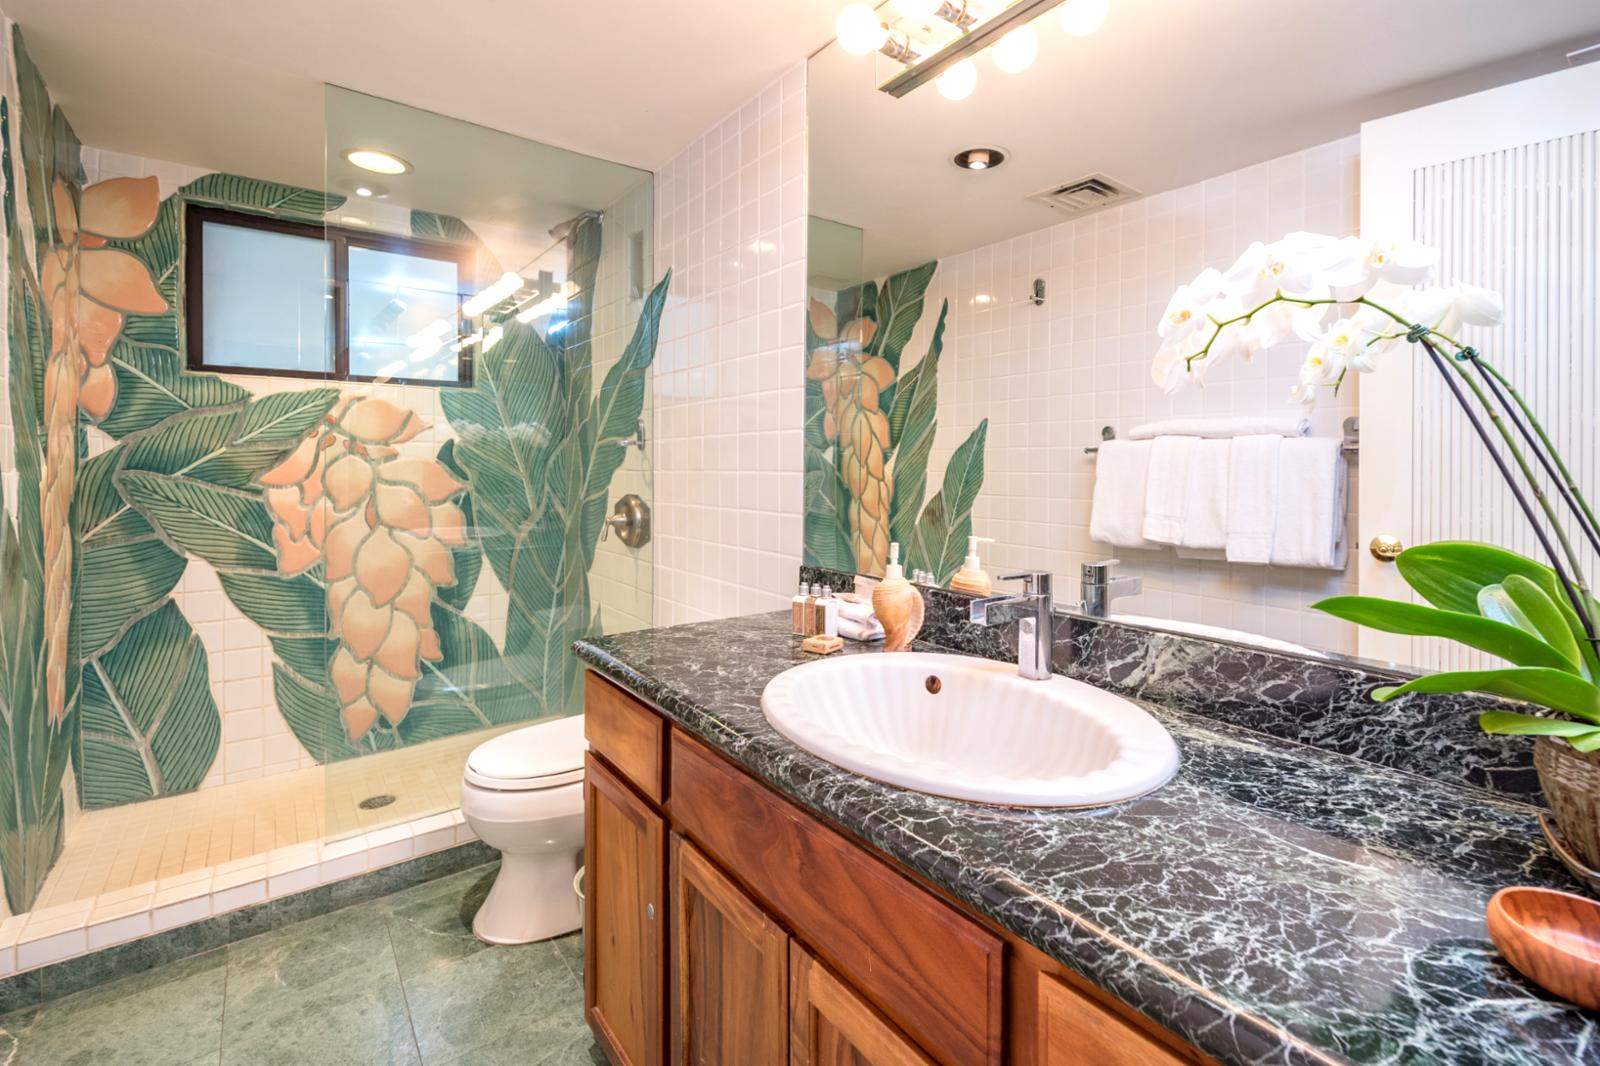 Custom tile work and floor to ceiling glass enclosed shower